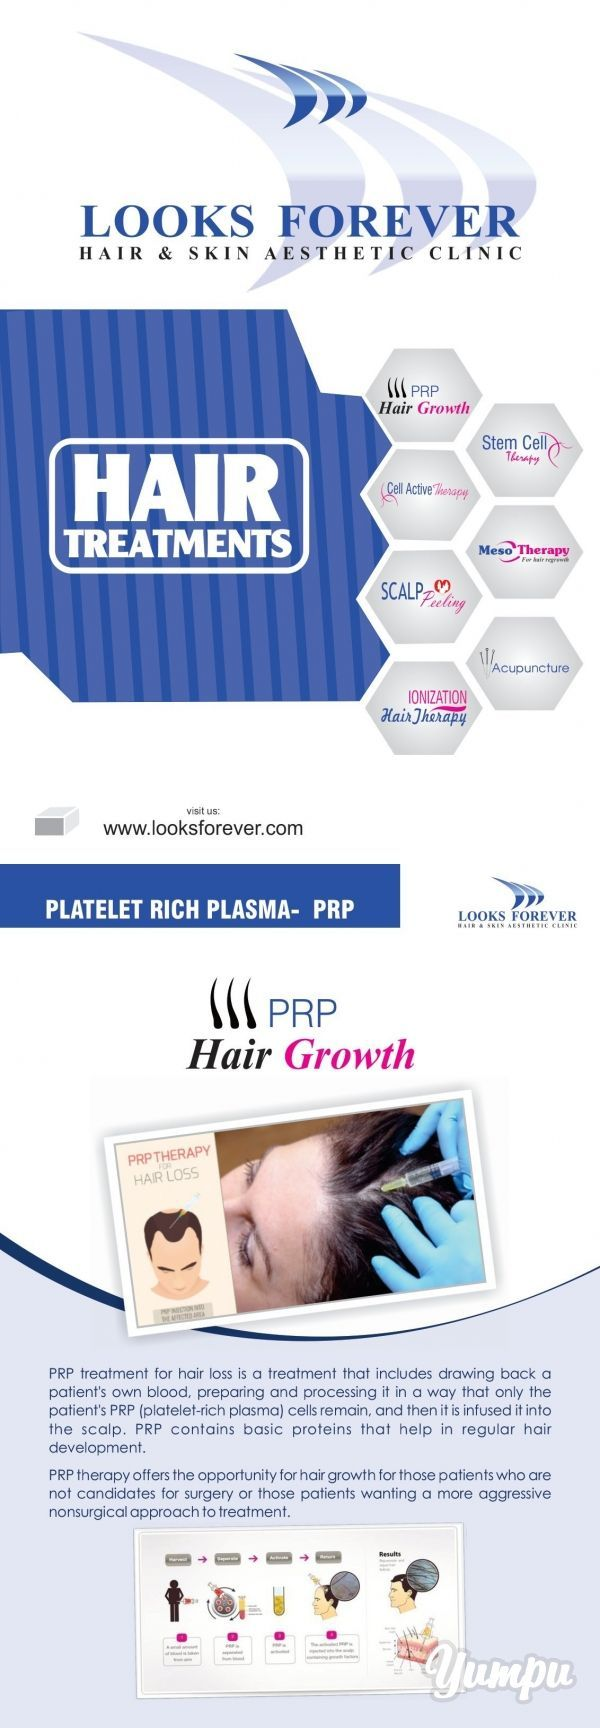 Looks Forever Hair & Skin Aesthetic Clinic, provides Treatment and Services to non only people suffering from Hair Loss and other Skin Problems, but also we provide the necessary boost and confidence to Burn Patients, Accidental Patients Cancer Patients. We make sure that there will be no doubt in their mind regarding their appearance and looks.  For more Details: http://hairpatch.looksforever.com/ or Request for Call Back from our Hair Experts on 9350633633 / Call Center No. 9555122122